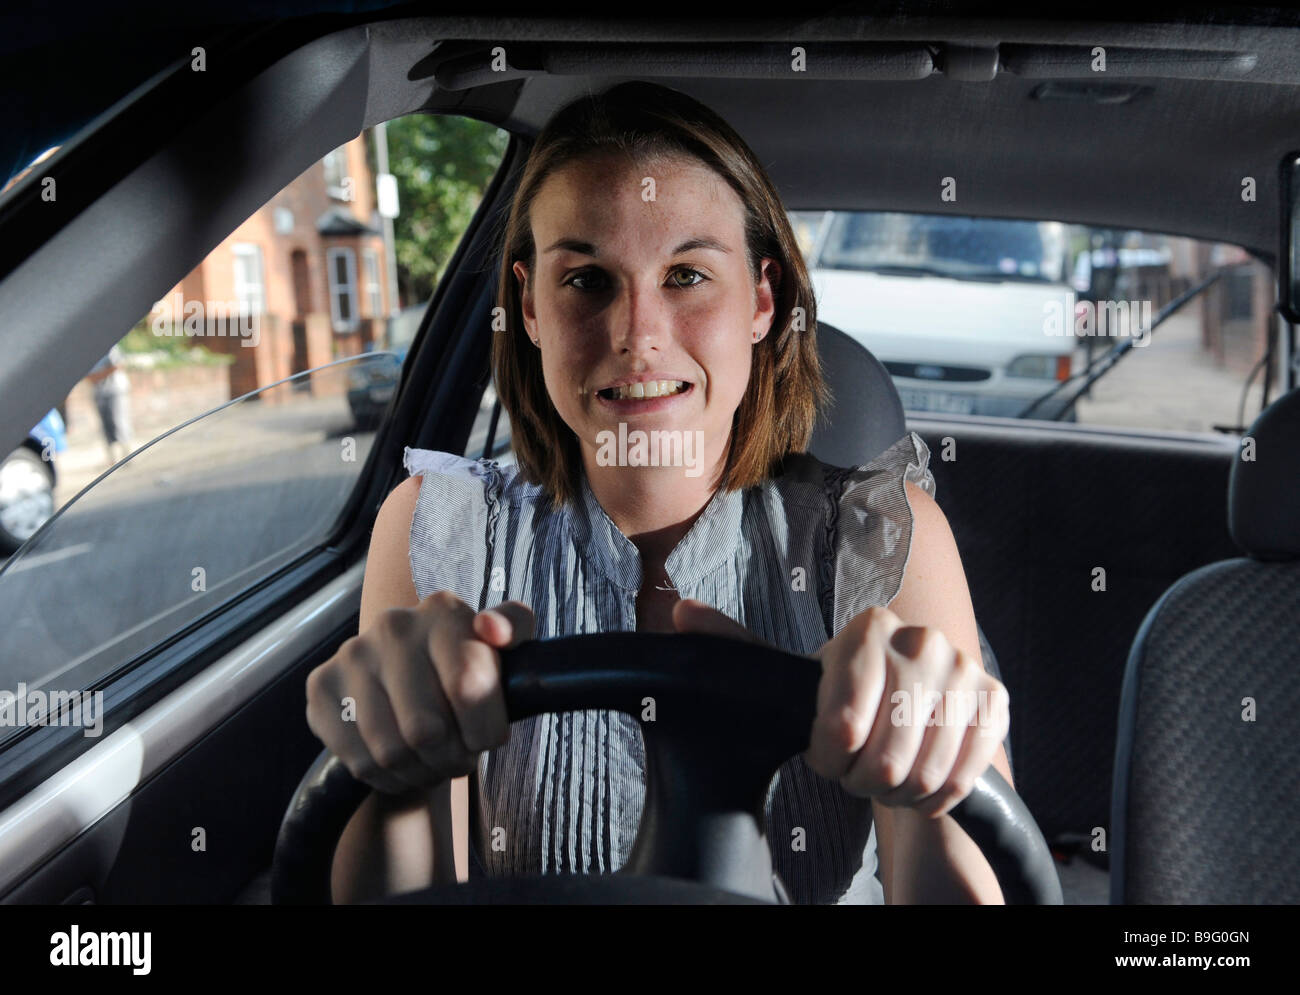 A nervous but determined female learner driver sits gripping the steering wheel of a car - Stock Image